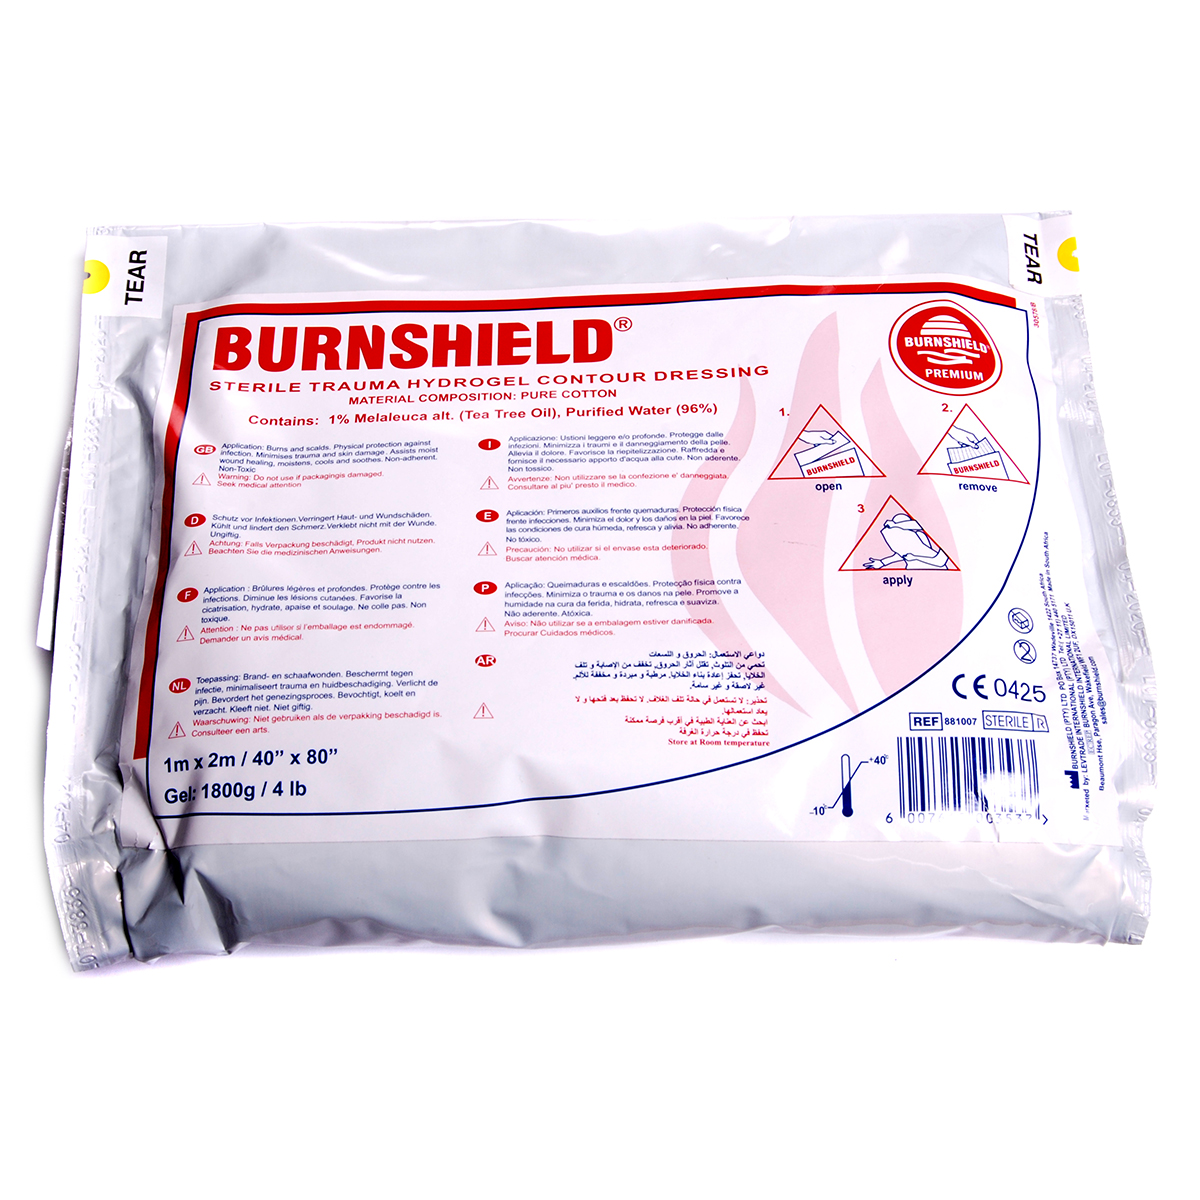 1m x 2m Full Body Burnshield® Contour Dressing